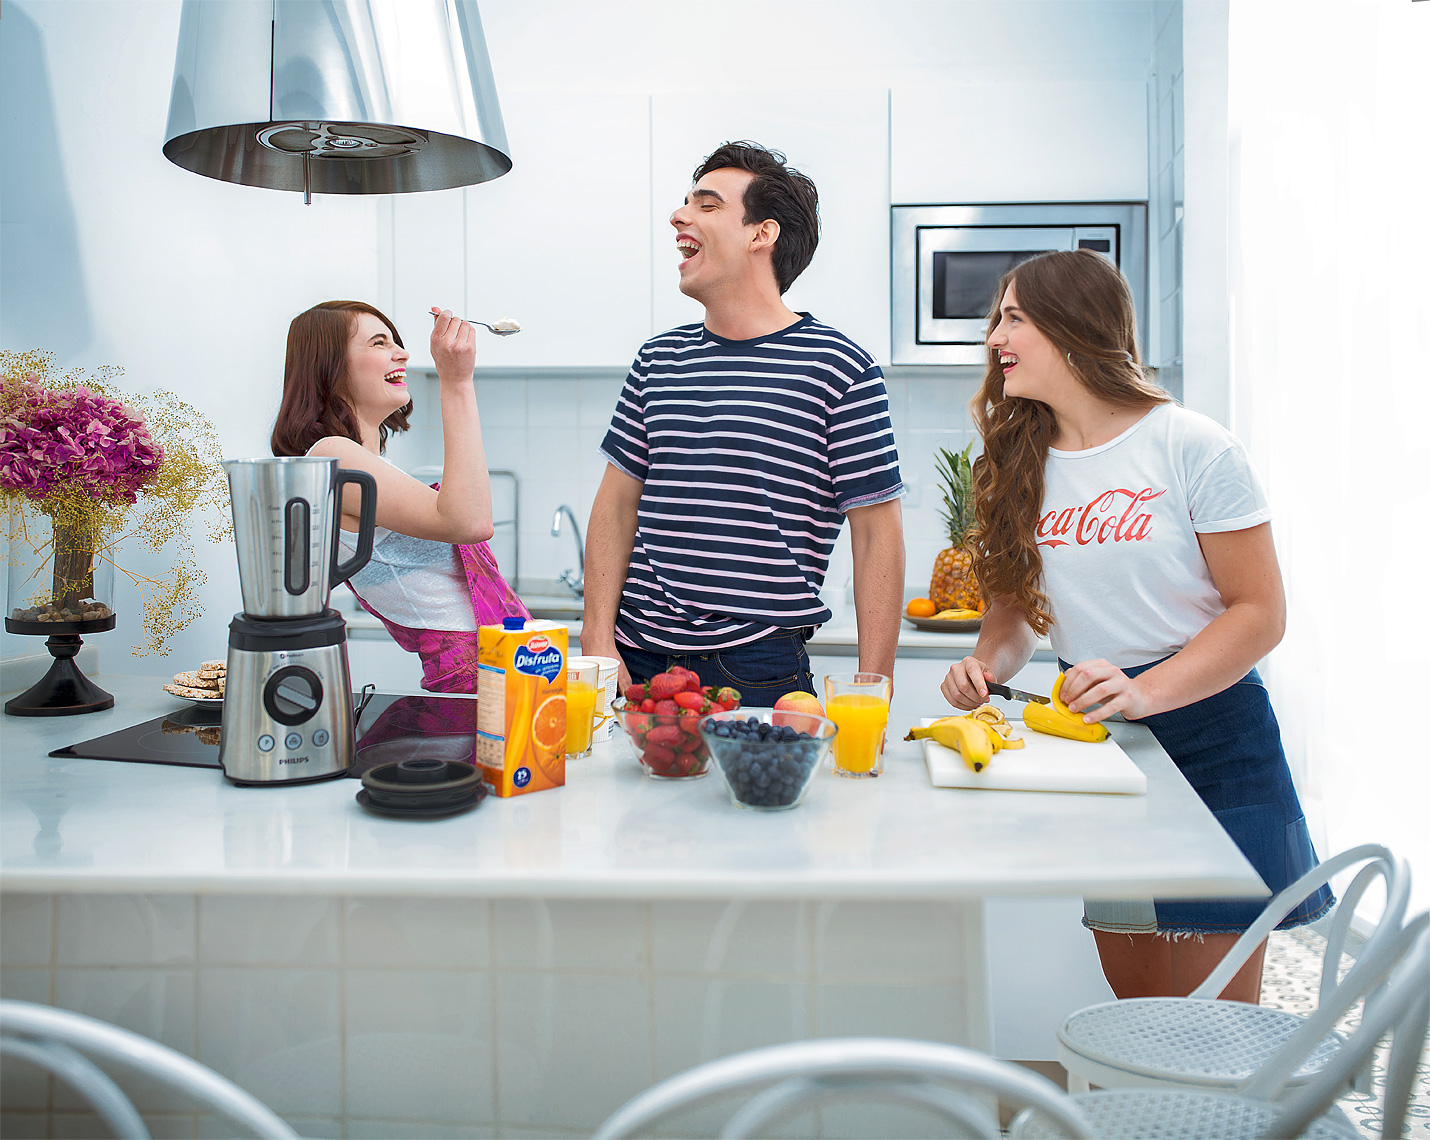 advertising-lifestyle-photo-of-teens-making-smoothie-in-kitchen-detroit-commercial-photographer-scott-stewart